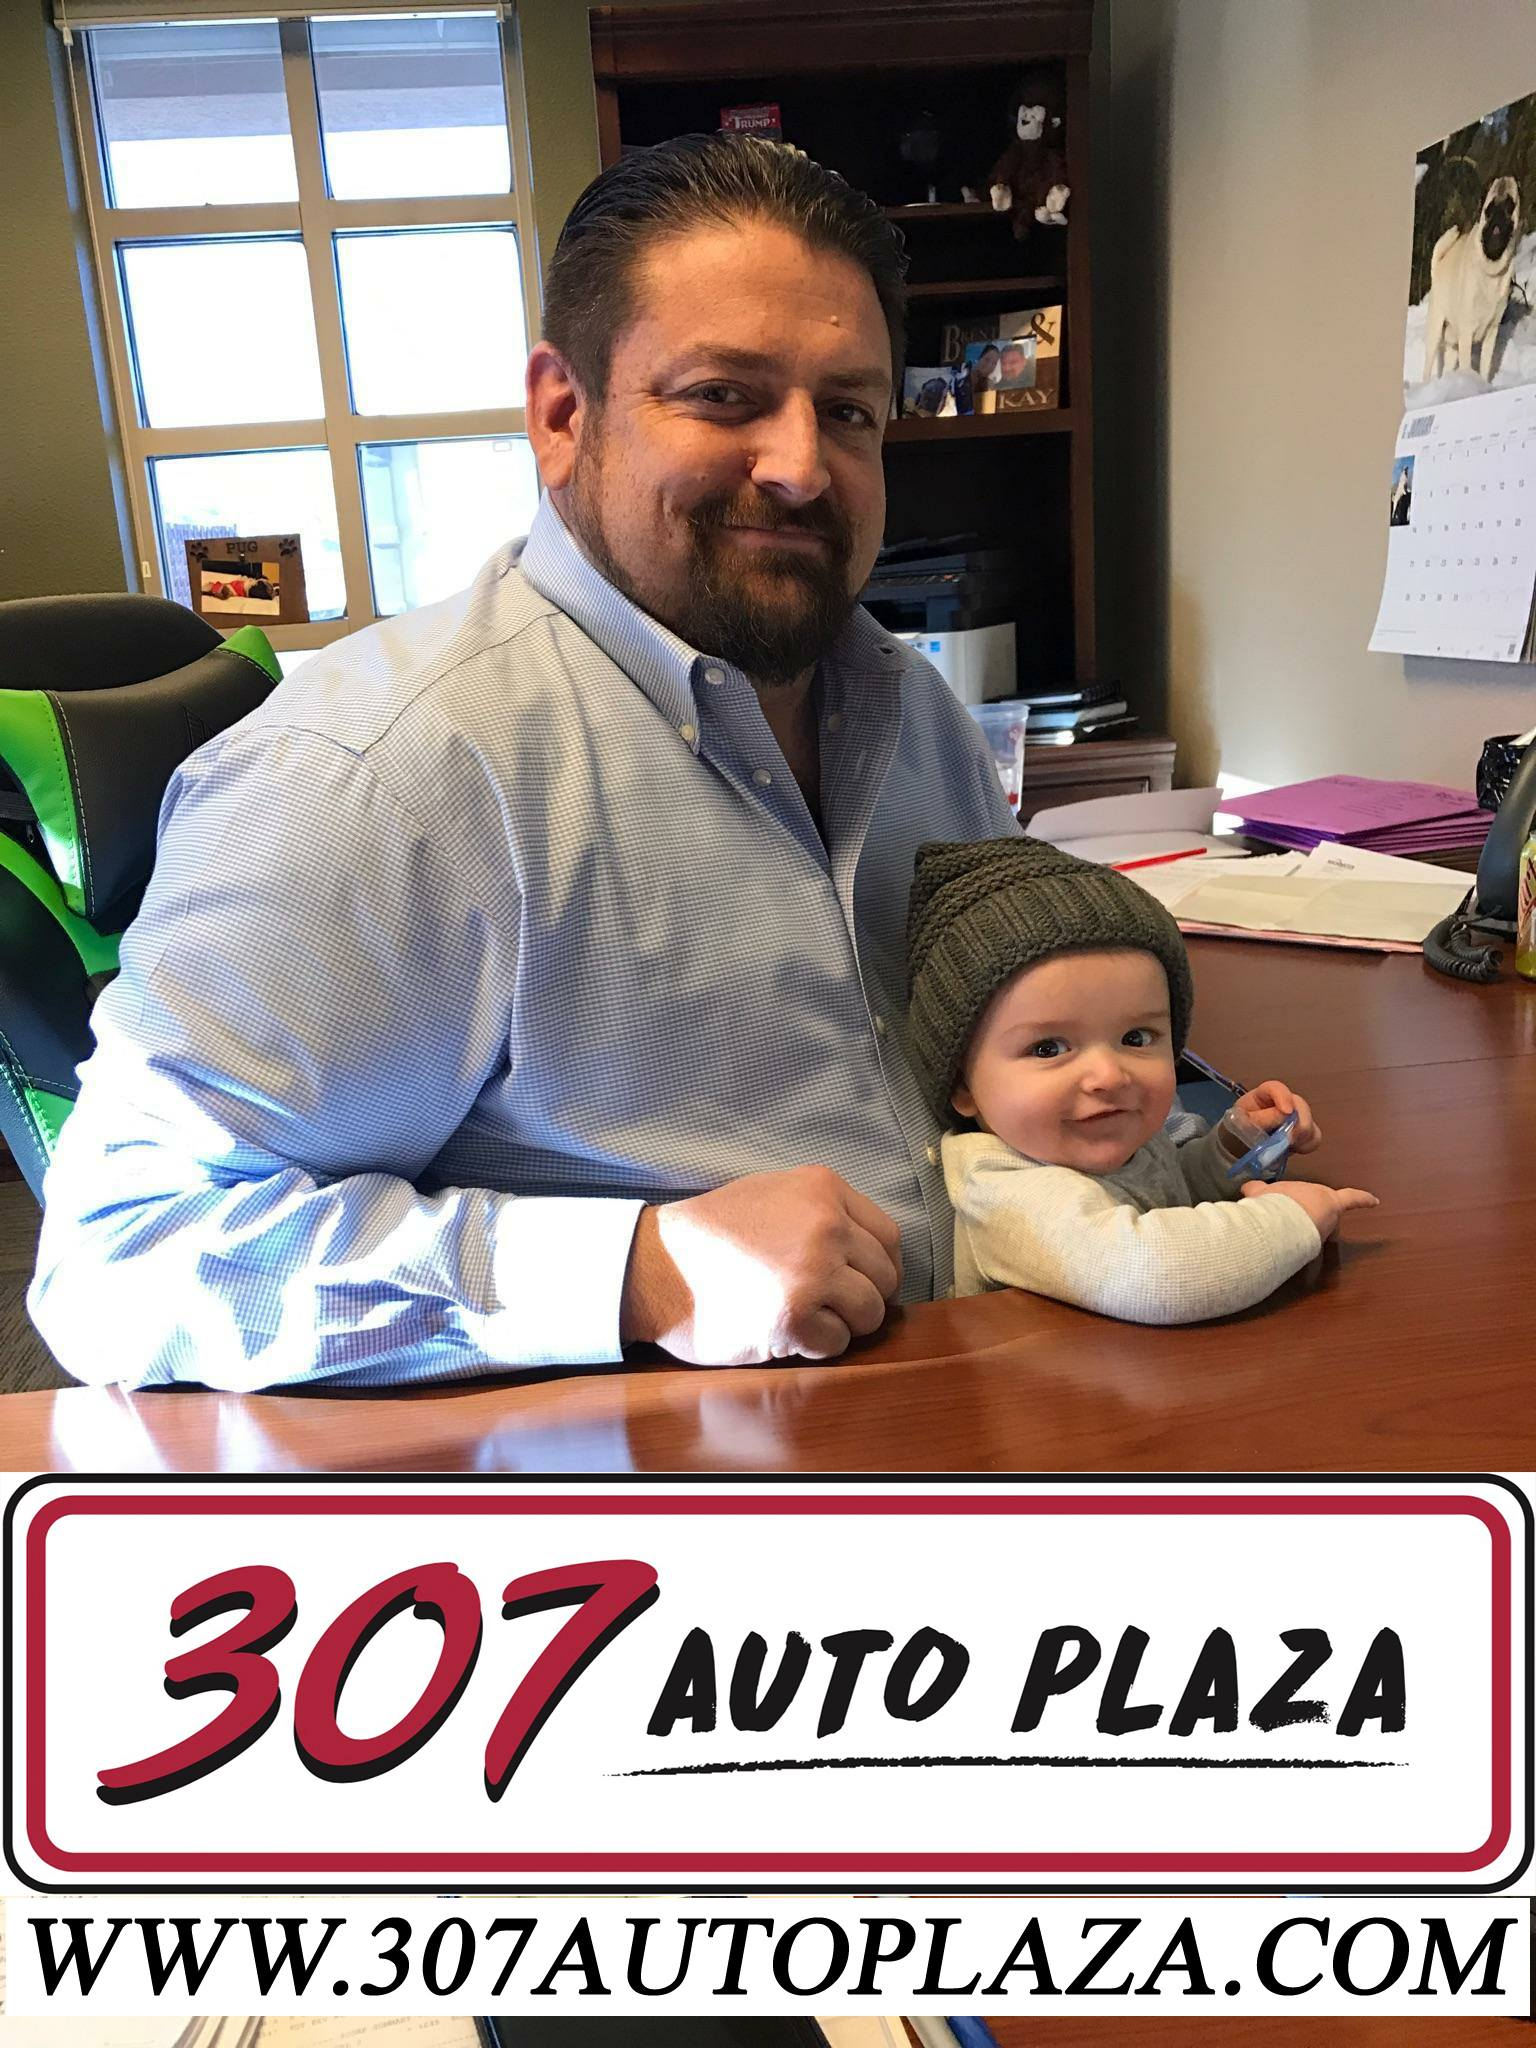 307 Auto Plaza; Treating Customers Right at Every Age